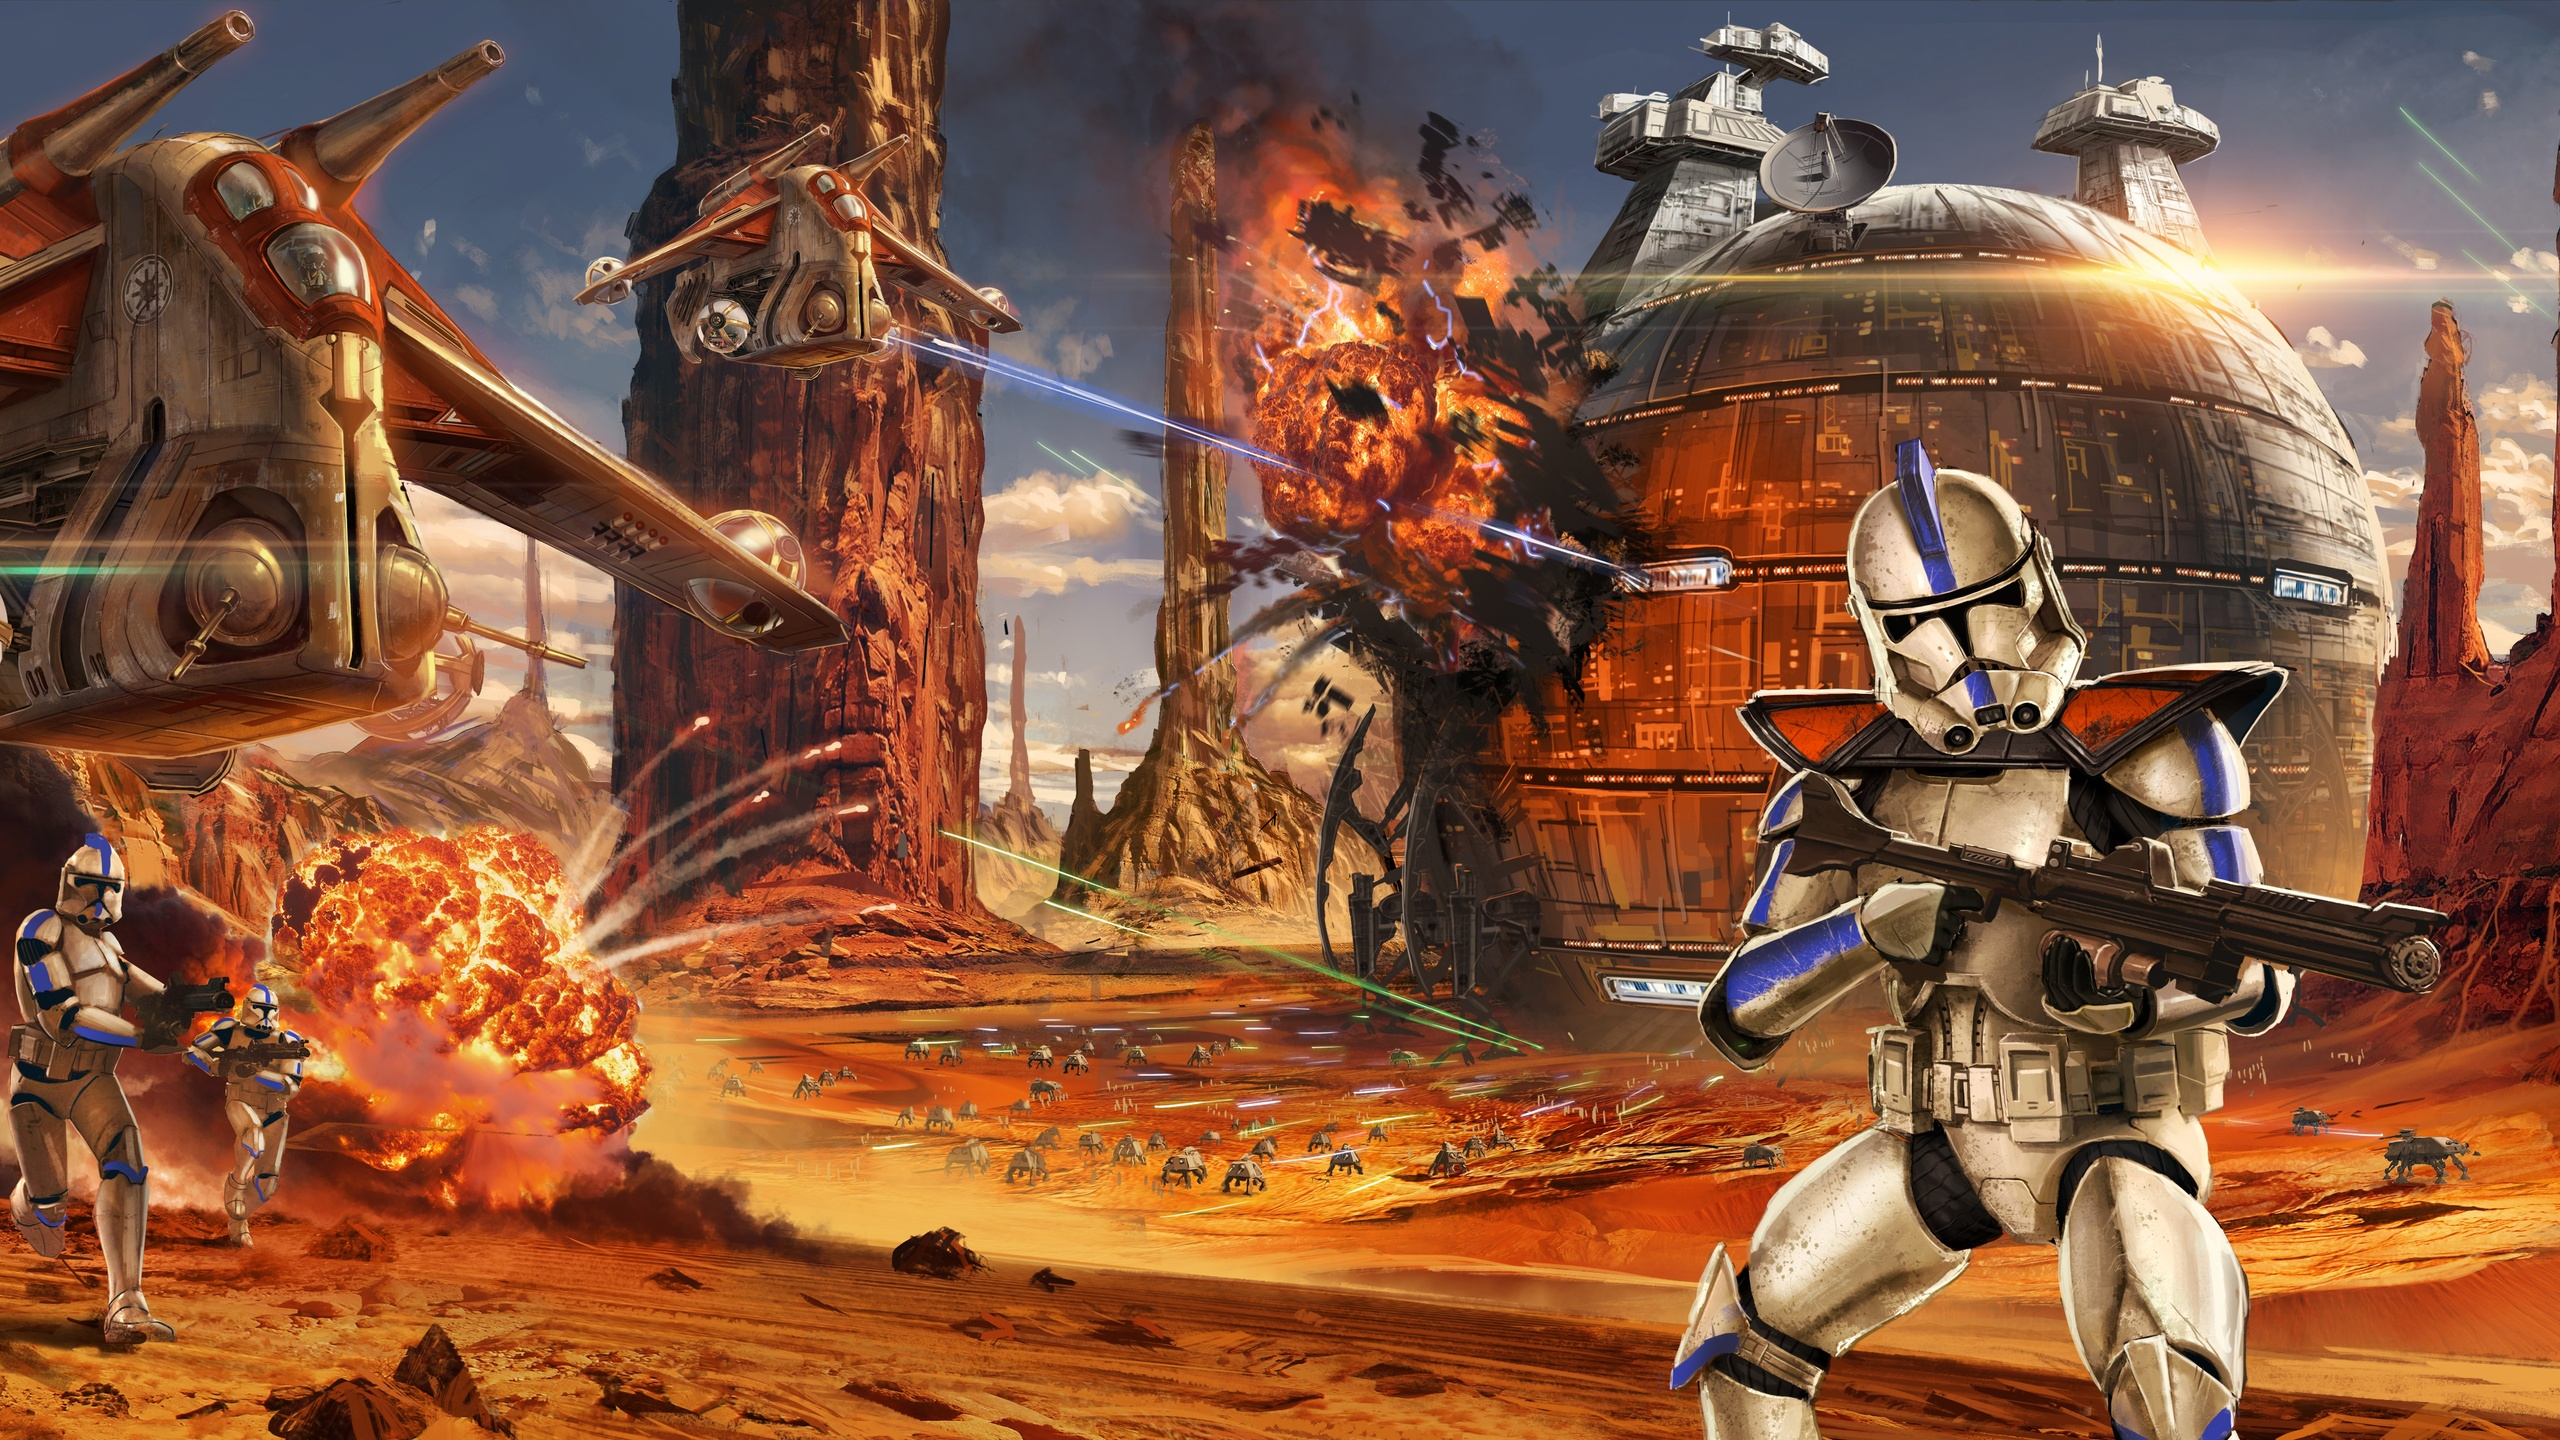 Star Wars Clone Wars Wallpaper Star Wars Battlefront Ii S More Resolutions